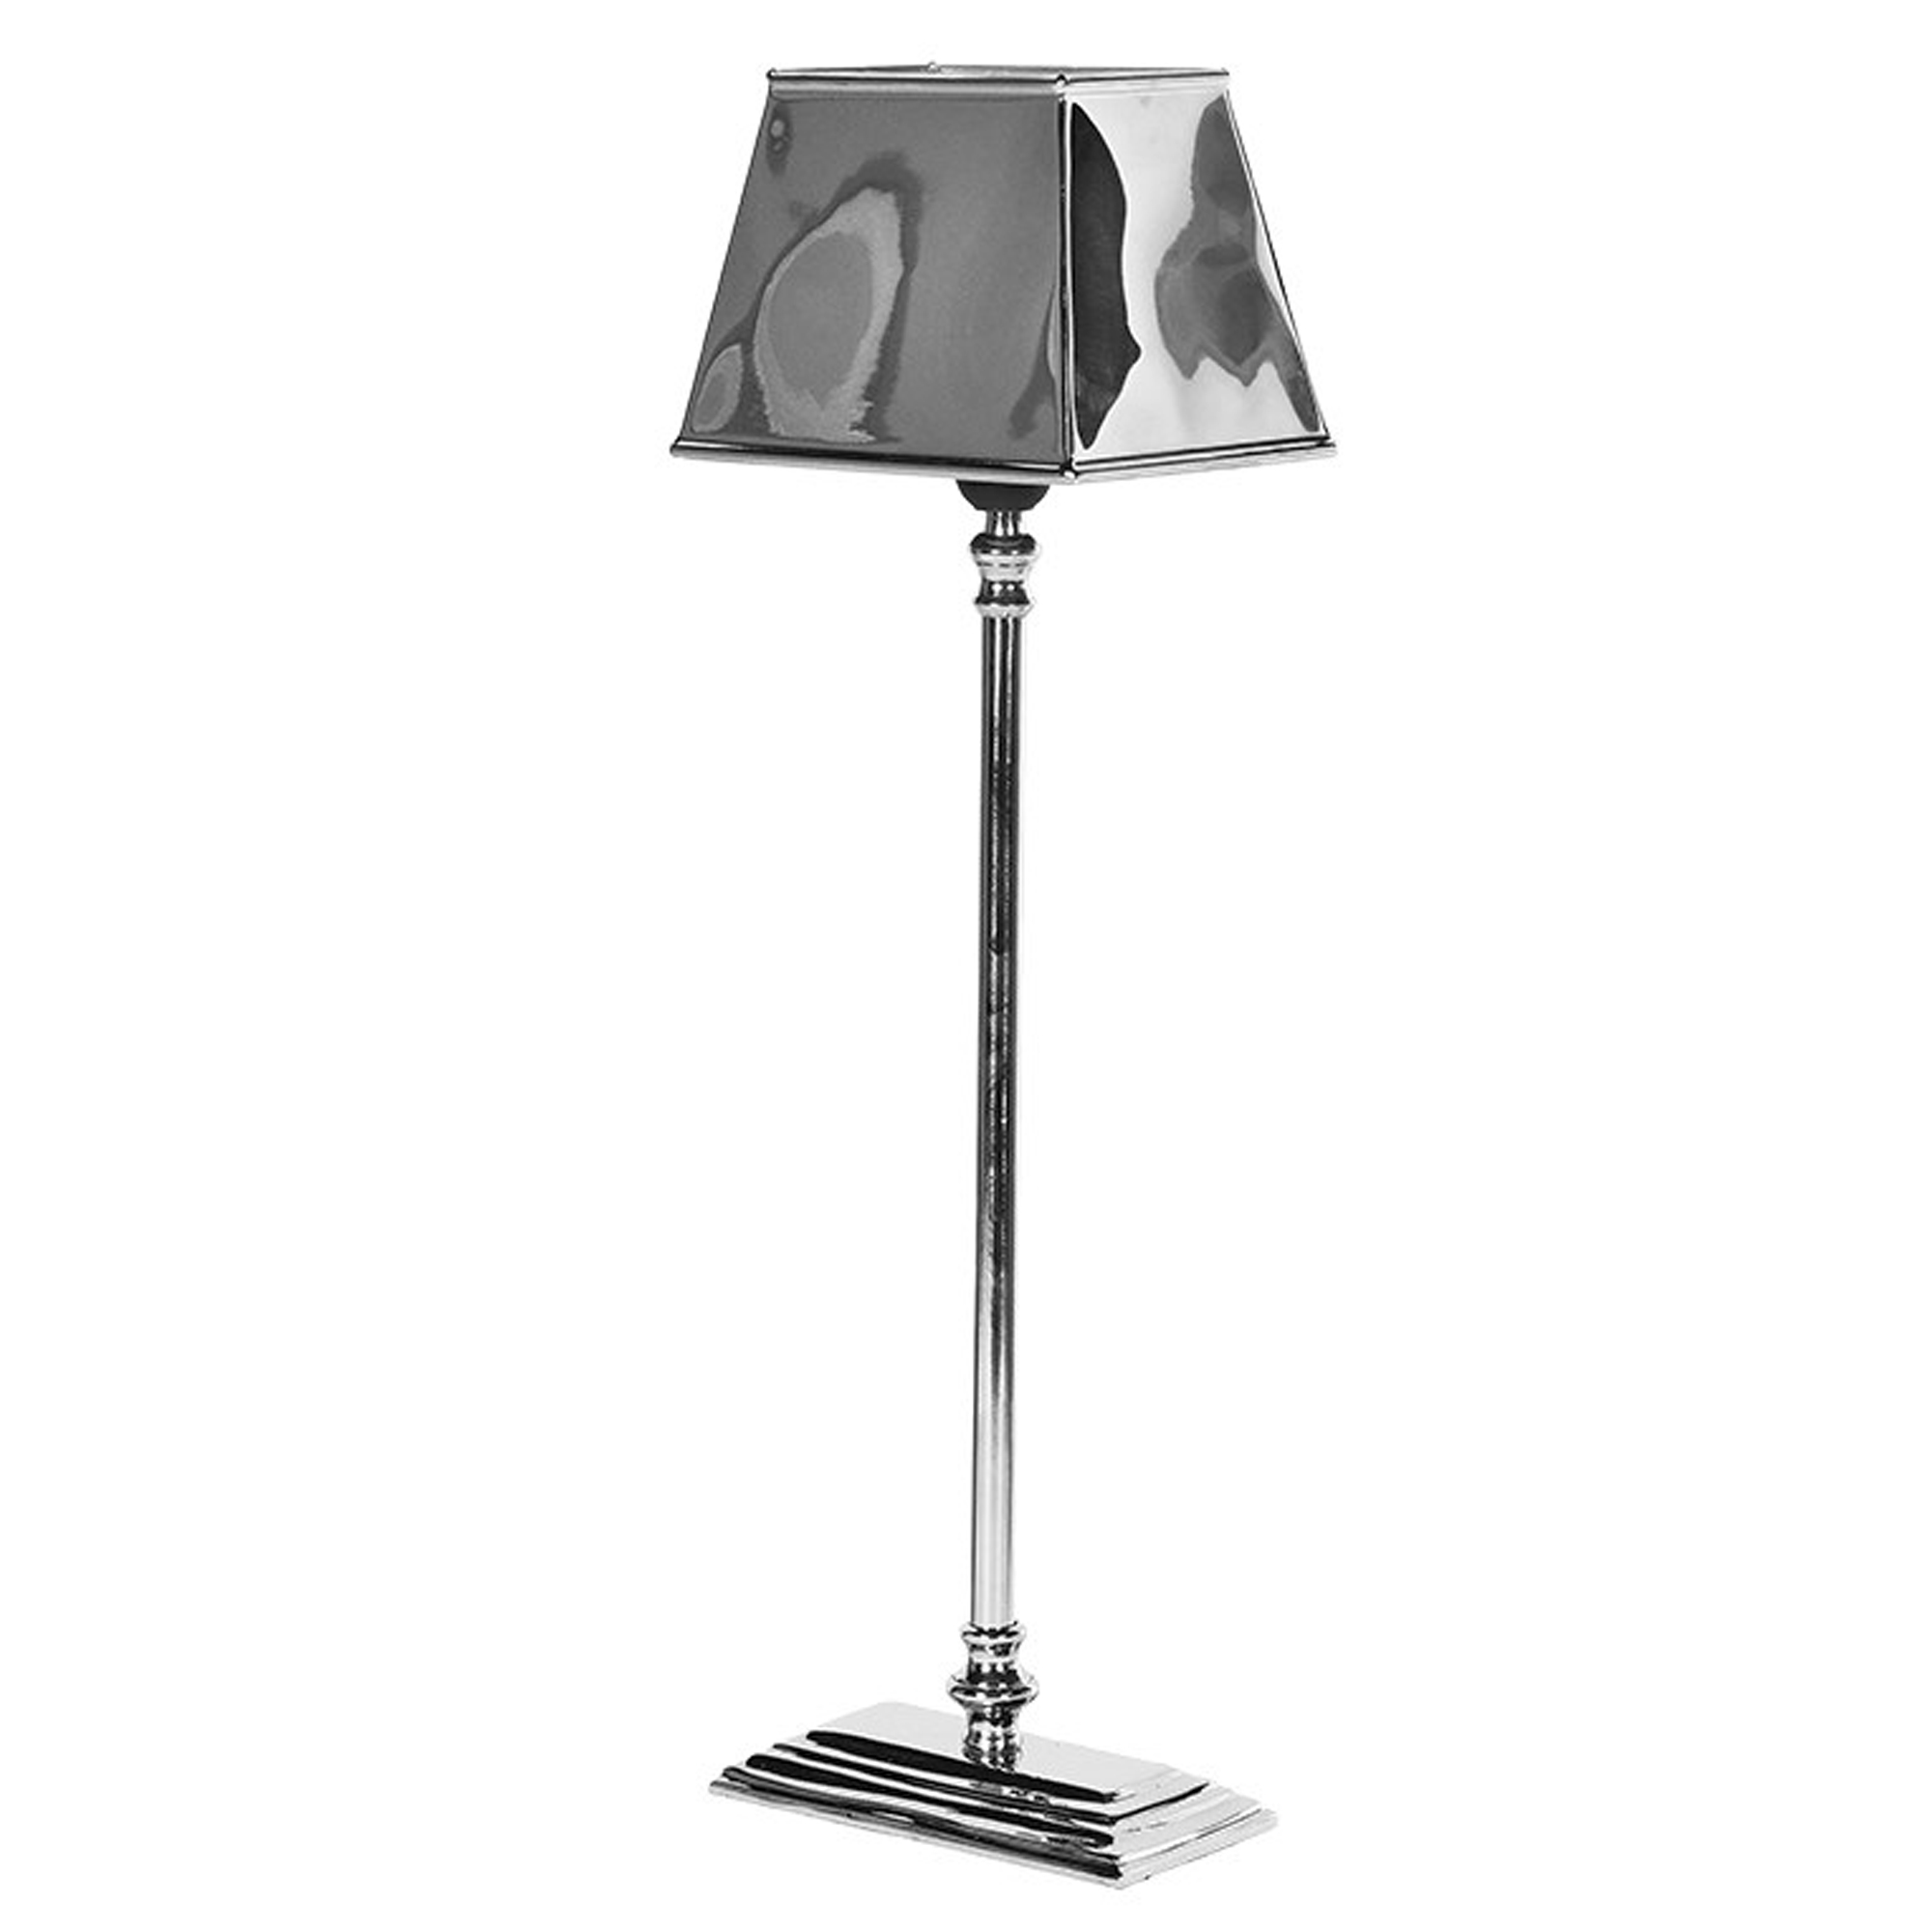 Stepped Aluminium Lamp With Shade